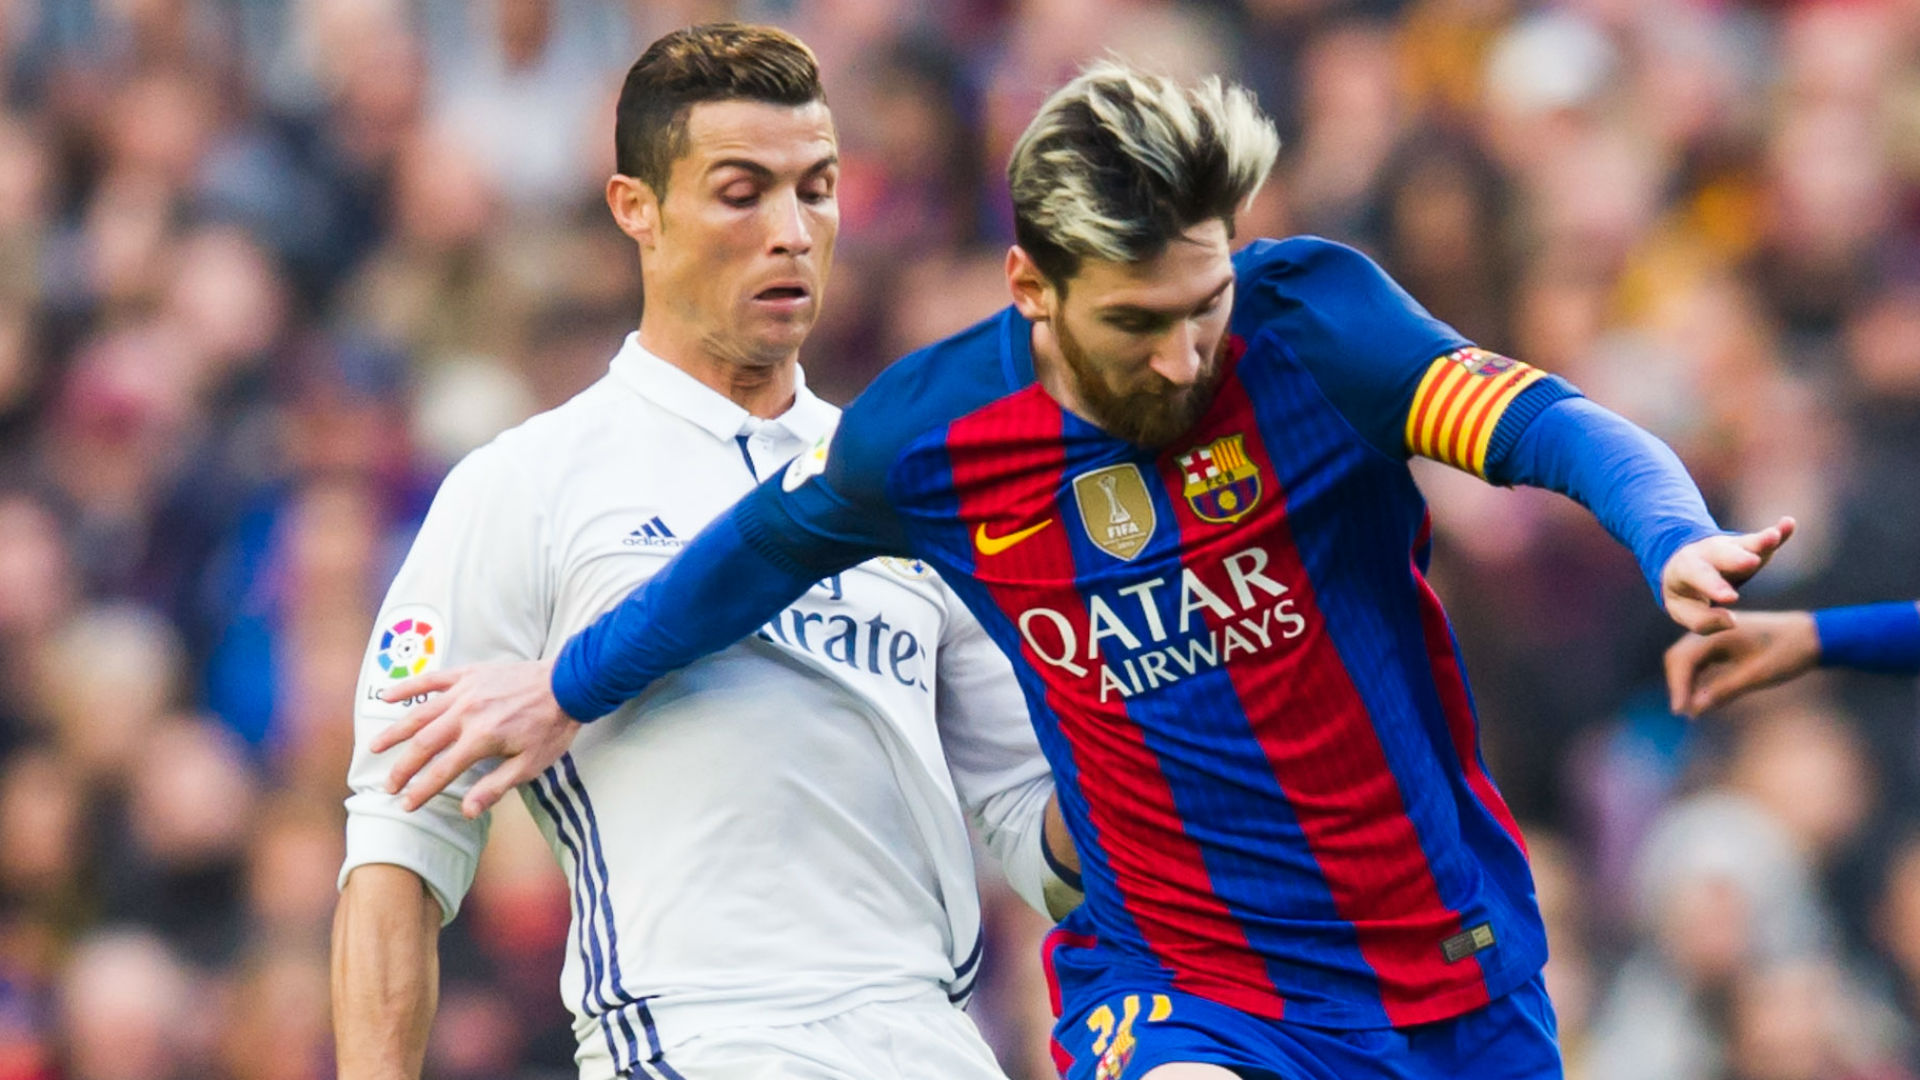 Messi says 'special duel' with Ronaldo will 'remain forever' in people's minds